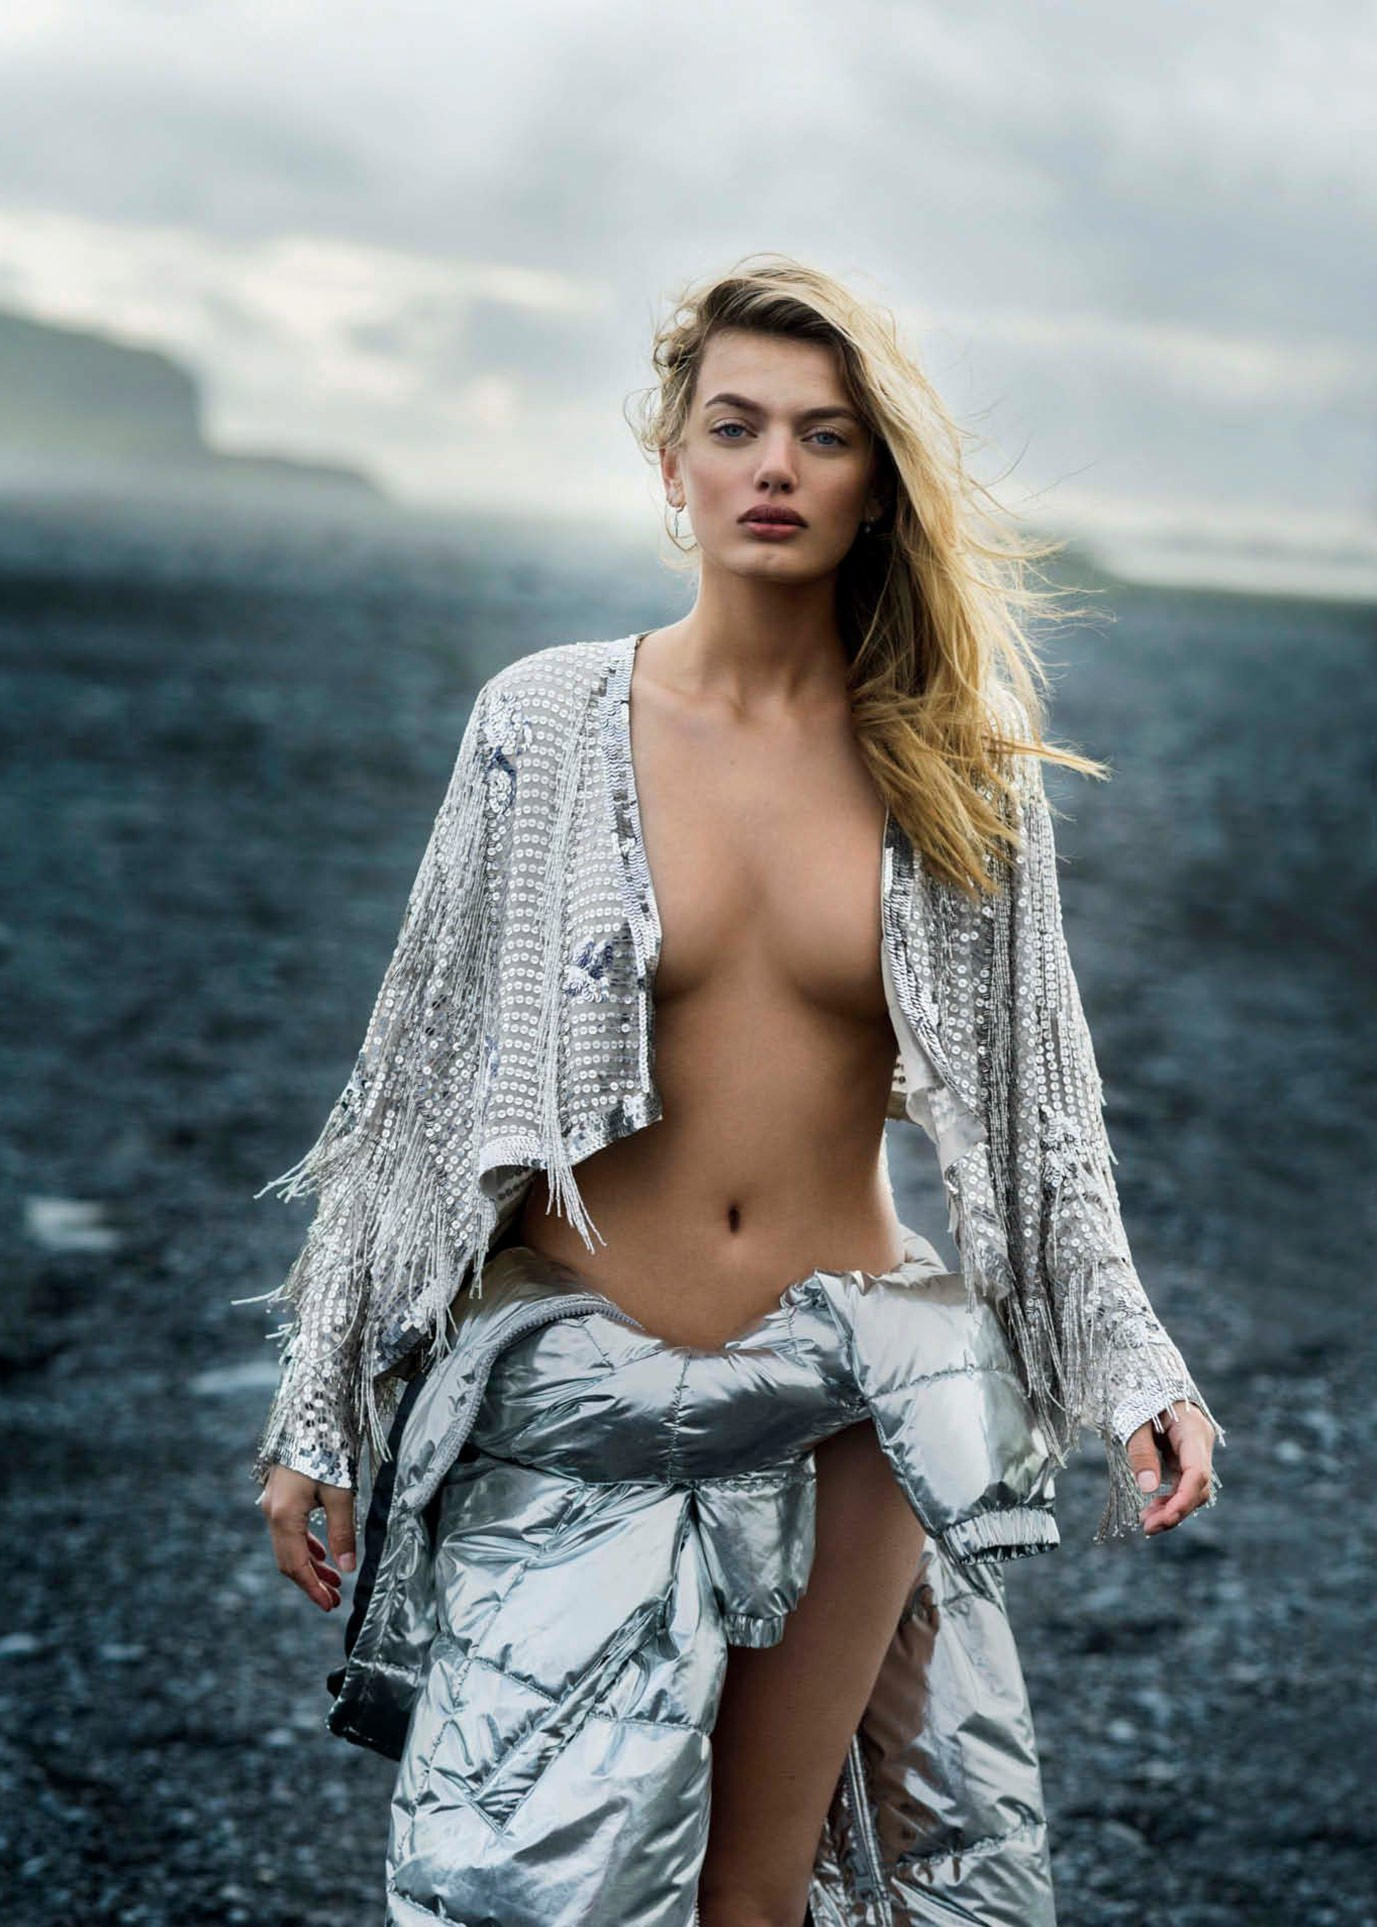 Hollands Sexiest Woman - Bregje Heinen by Gilles Bensimon - Maxim US september 2017